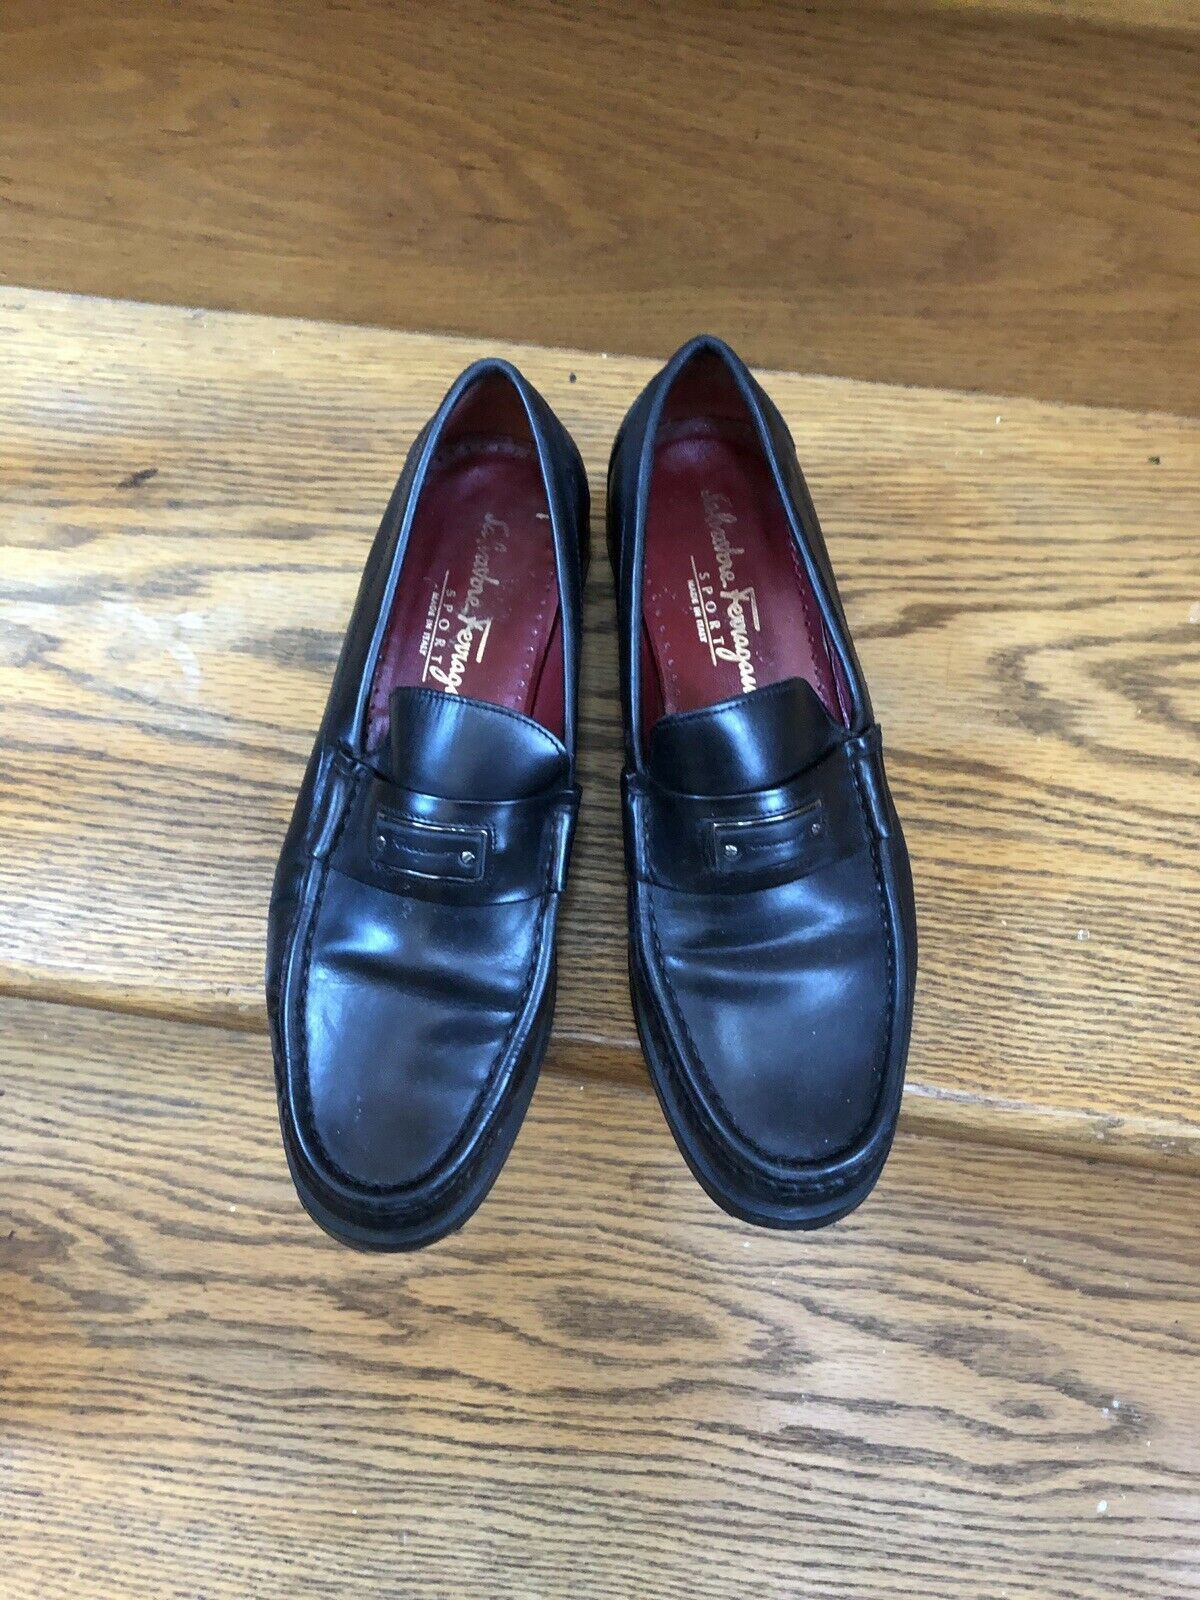 Lknu Leather Black Loafers By Salvatore Ferragamo 8.5 B Logo